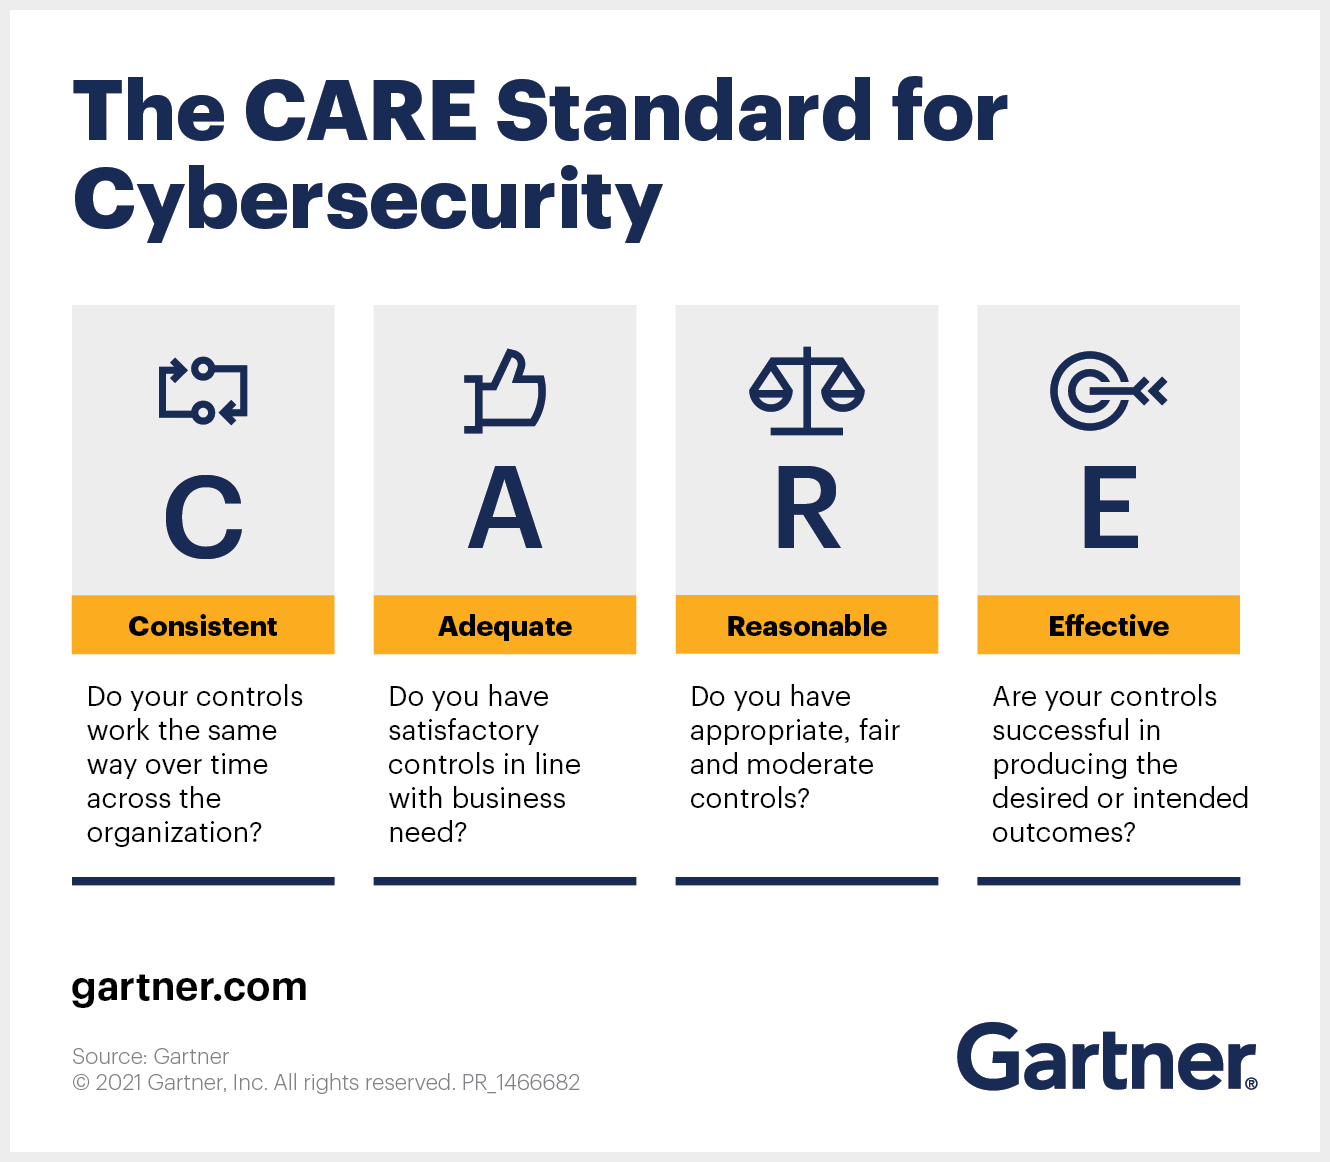 The CARE Standard for Cybersecurity